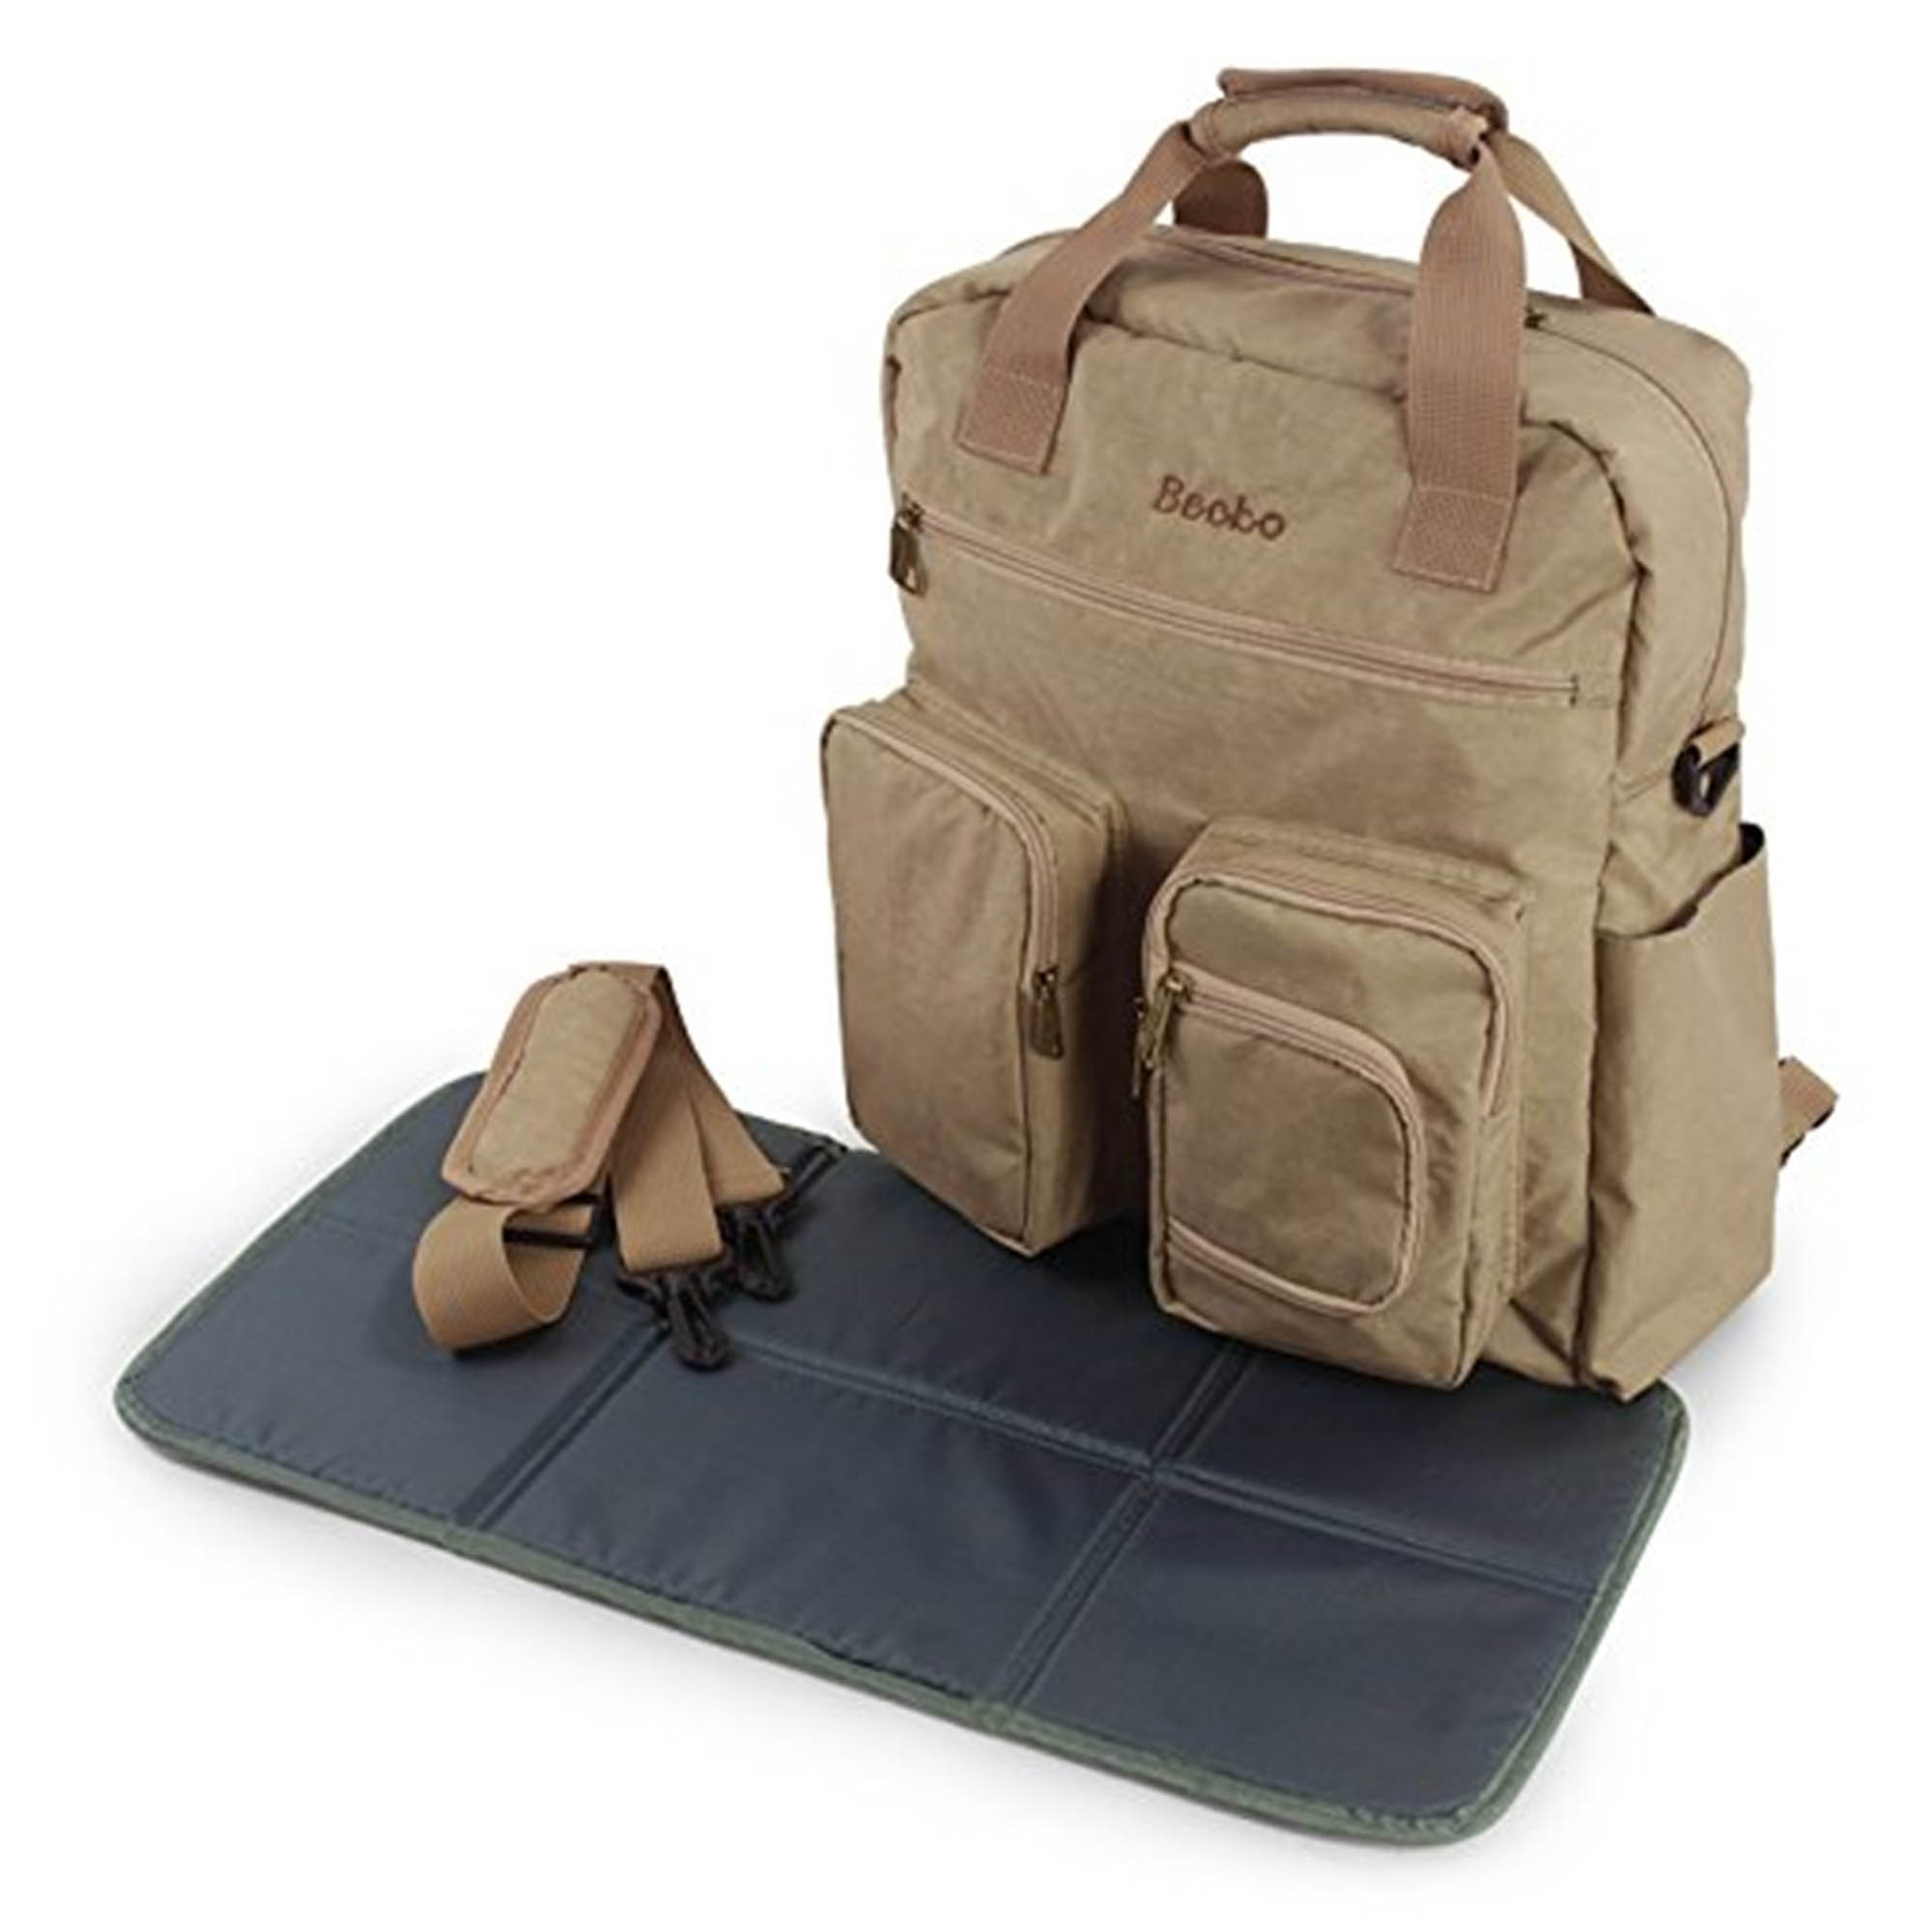 Becko Khaki Multi-functional Diaper Backpack with Changing Pad